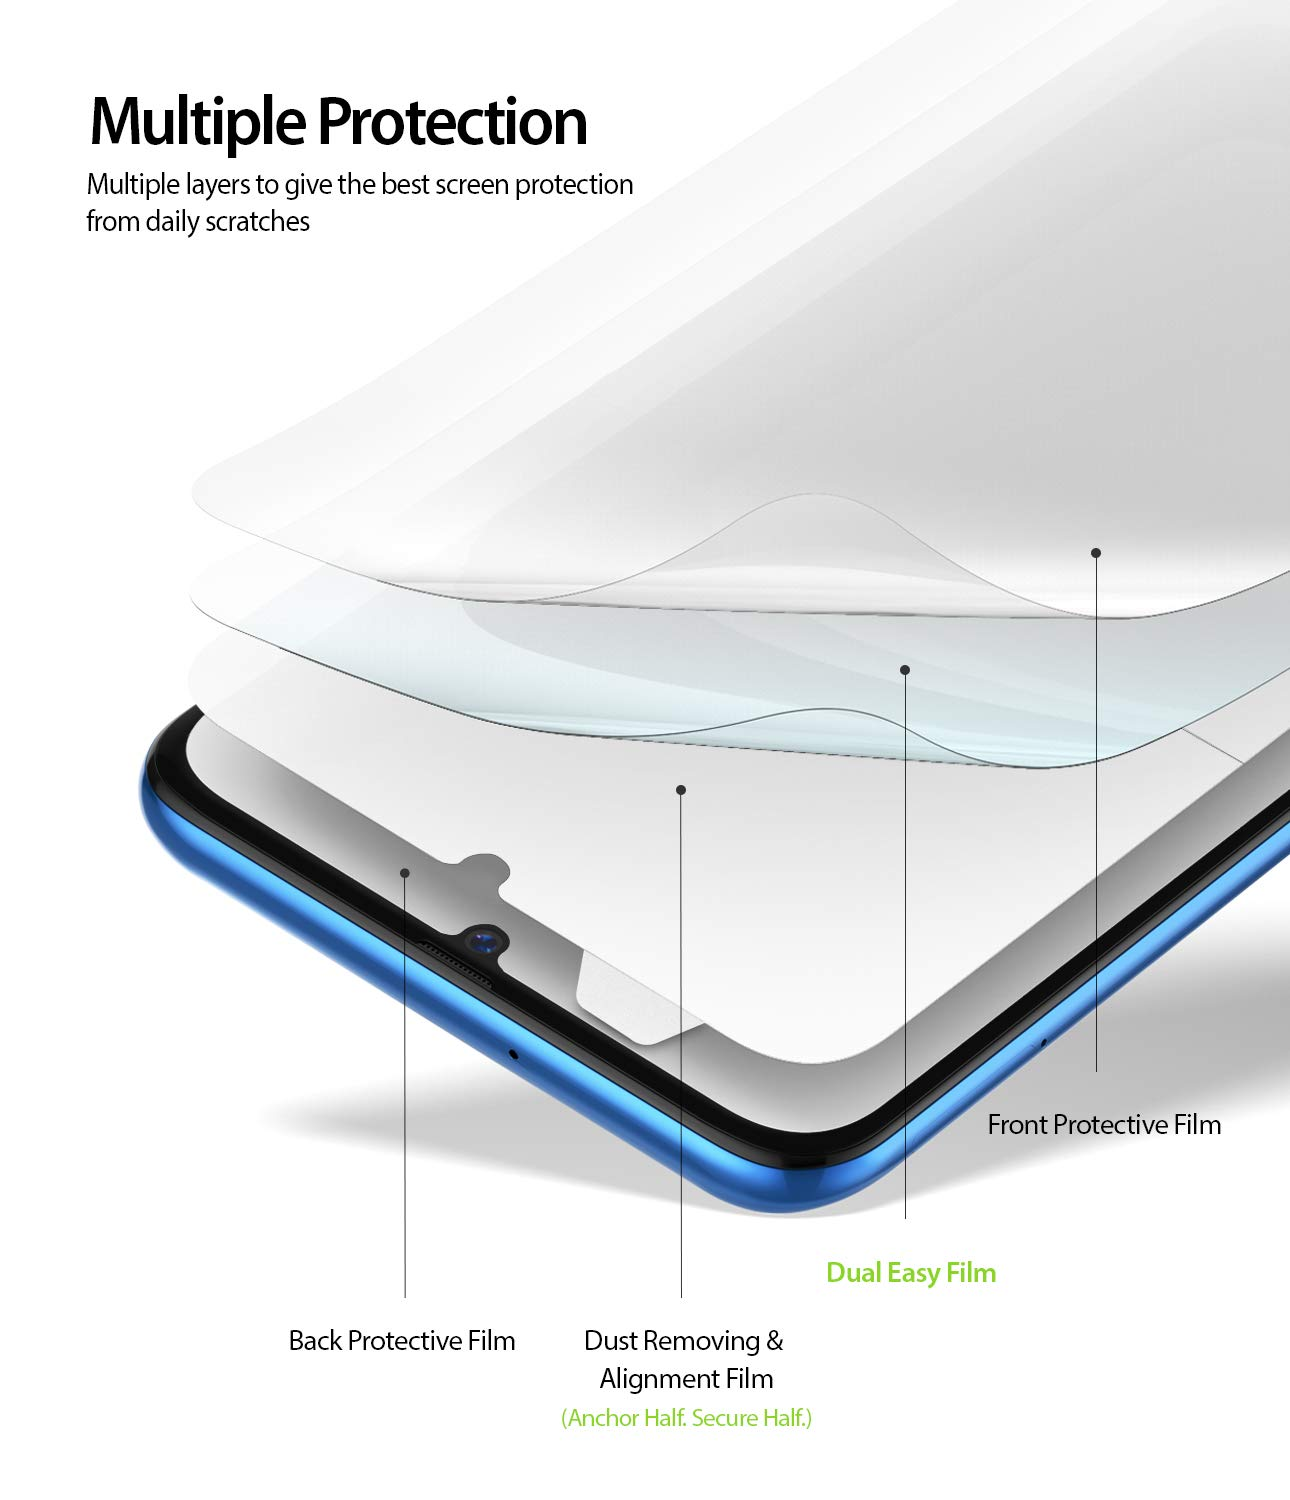 multiple protection with 4 layer construction